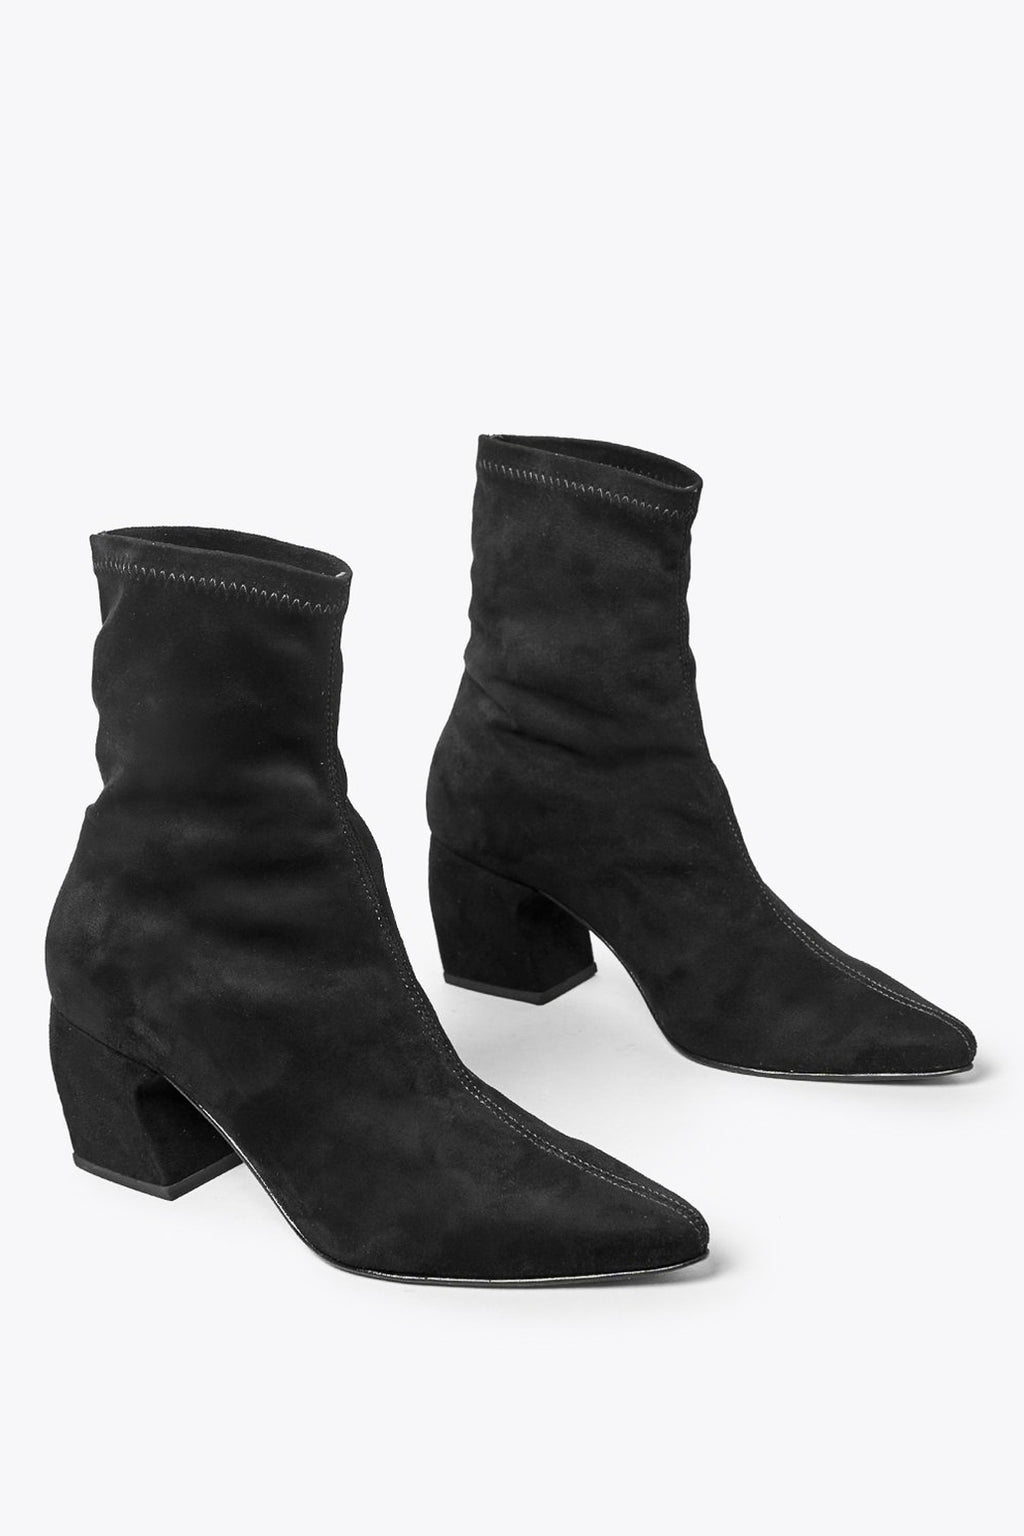 Rachel Comey Zaha Booties in Black